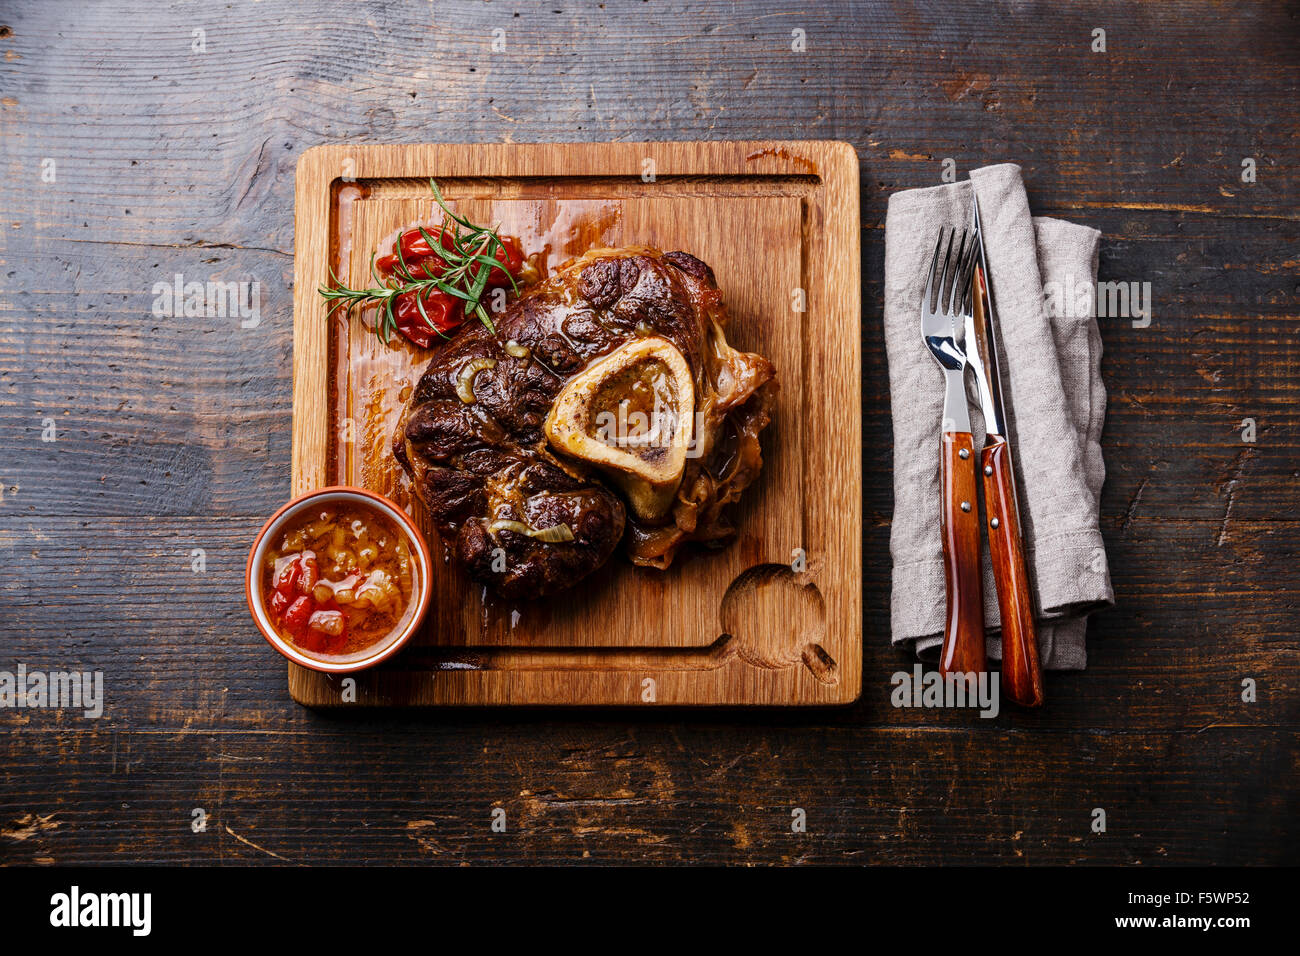 Prepared Osso buco Veal shank with tomatoes on serving board on wooden background - Stock Image